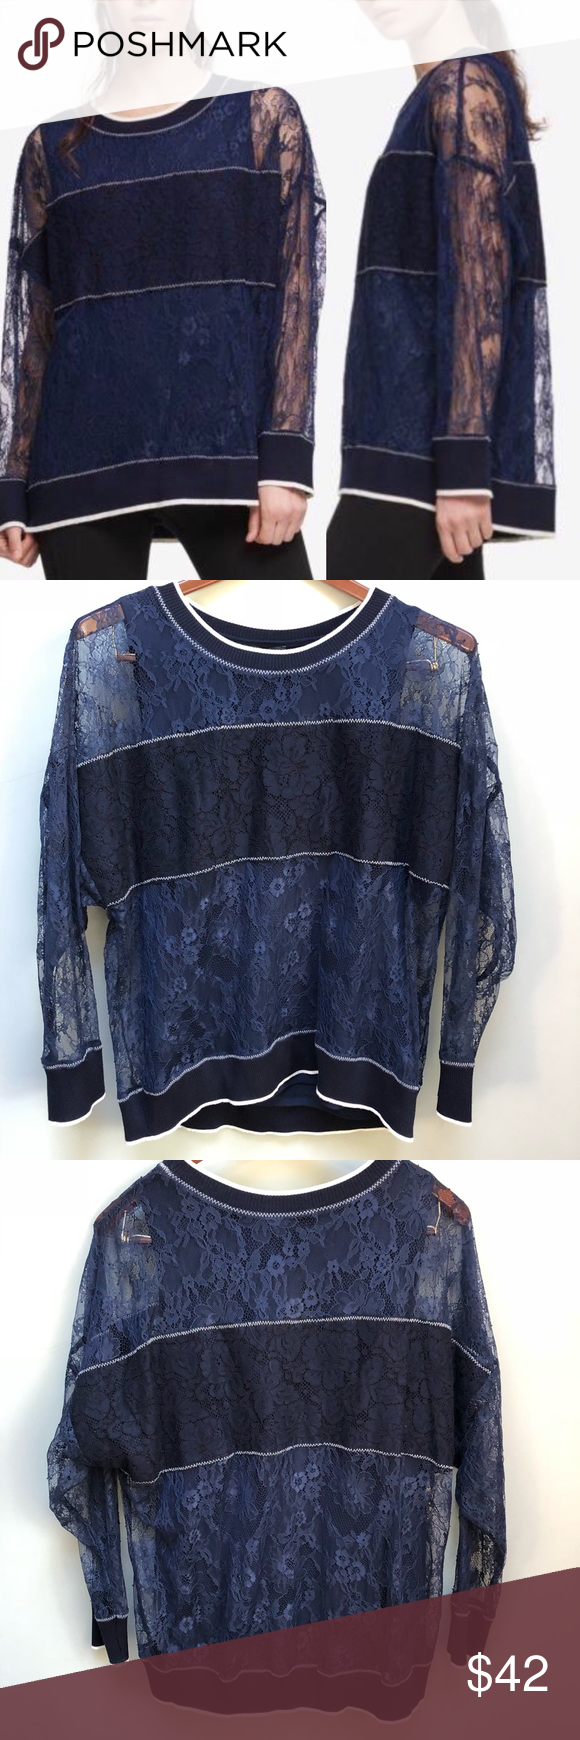 "240ec57603439e DKNY | Lace Navy Pullover Sweatshirt Blouse DKNY navy lace overlay long  sleeve shirt Attached tank top New with tags Size medium Pit to pit: 26""  Length: 29"" ..."